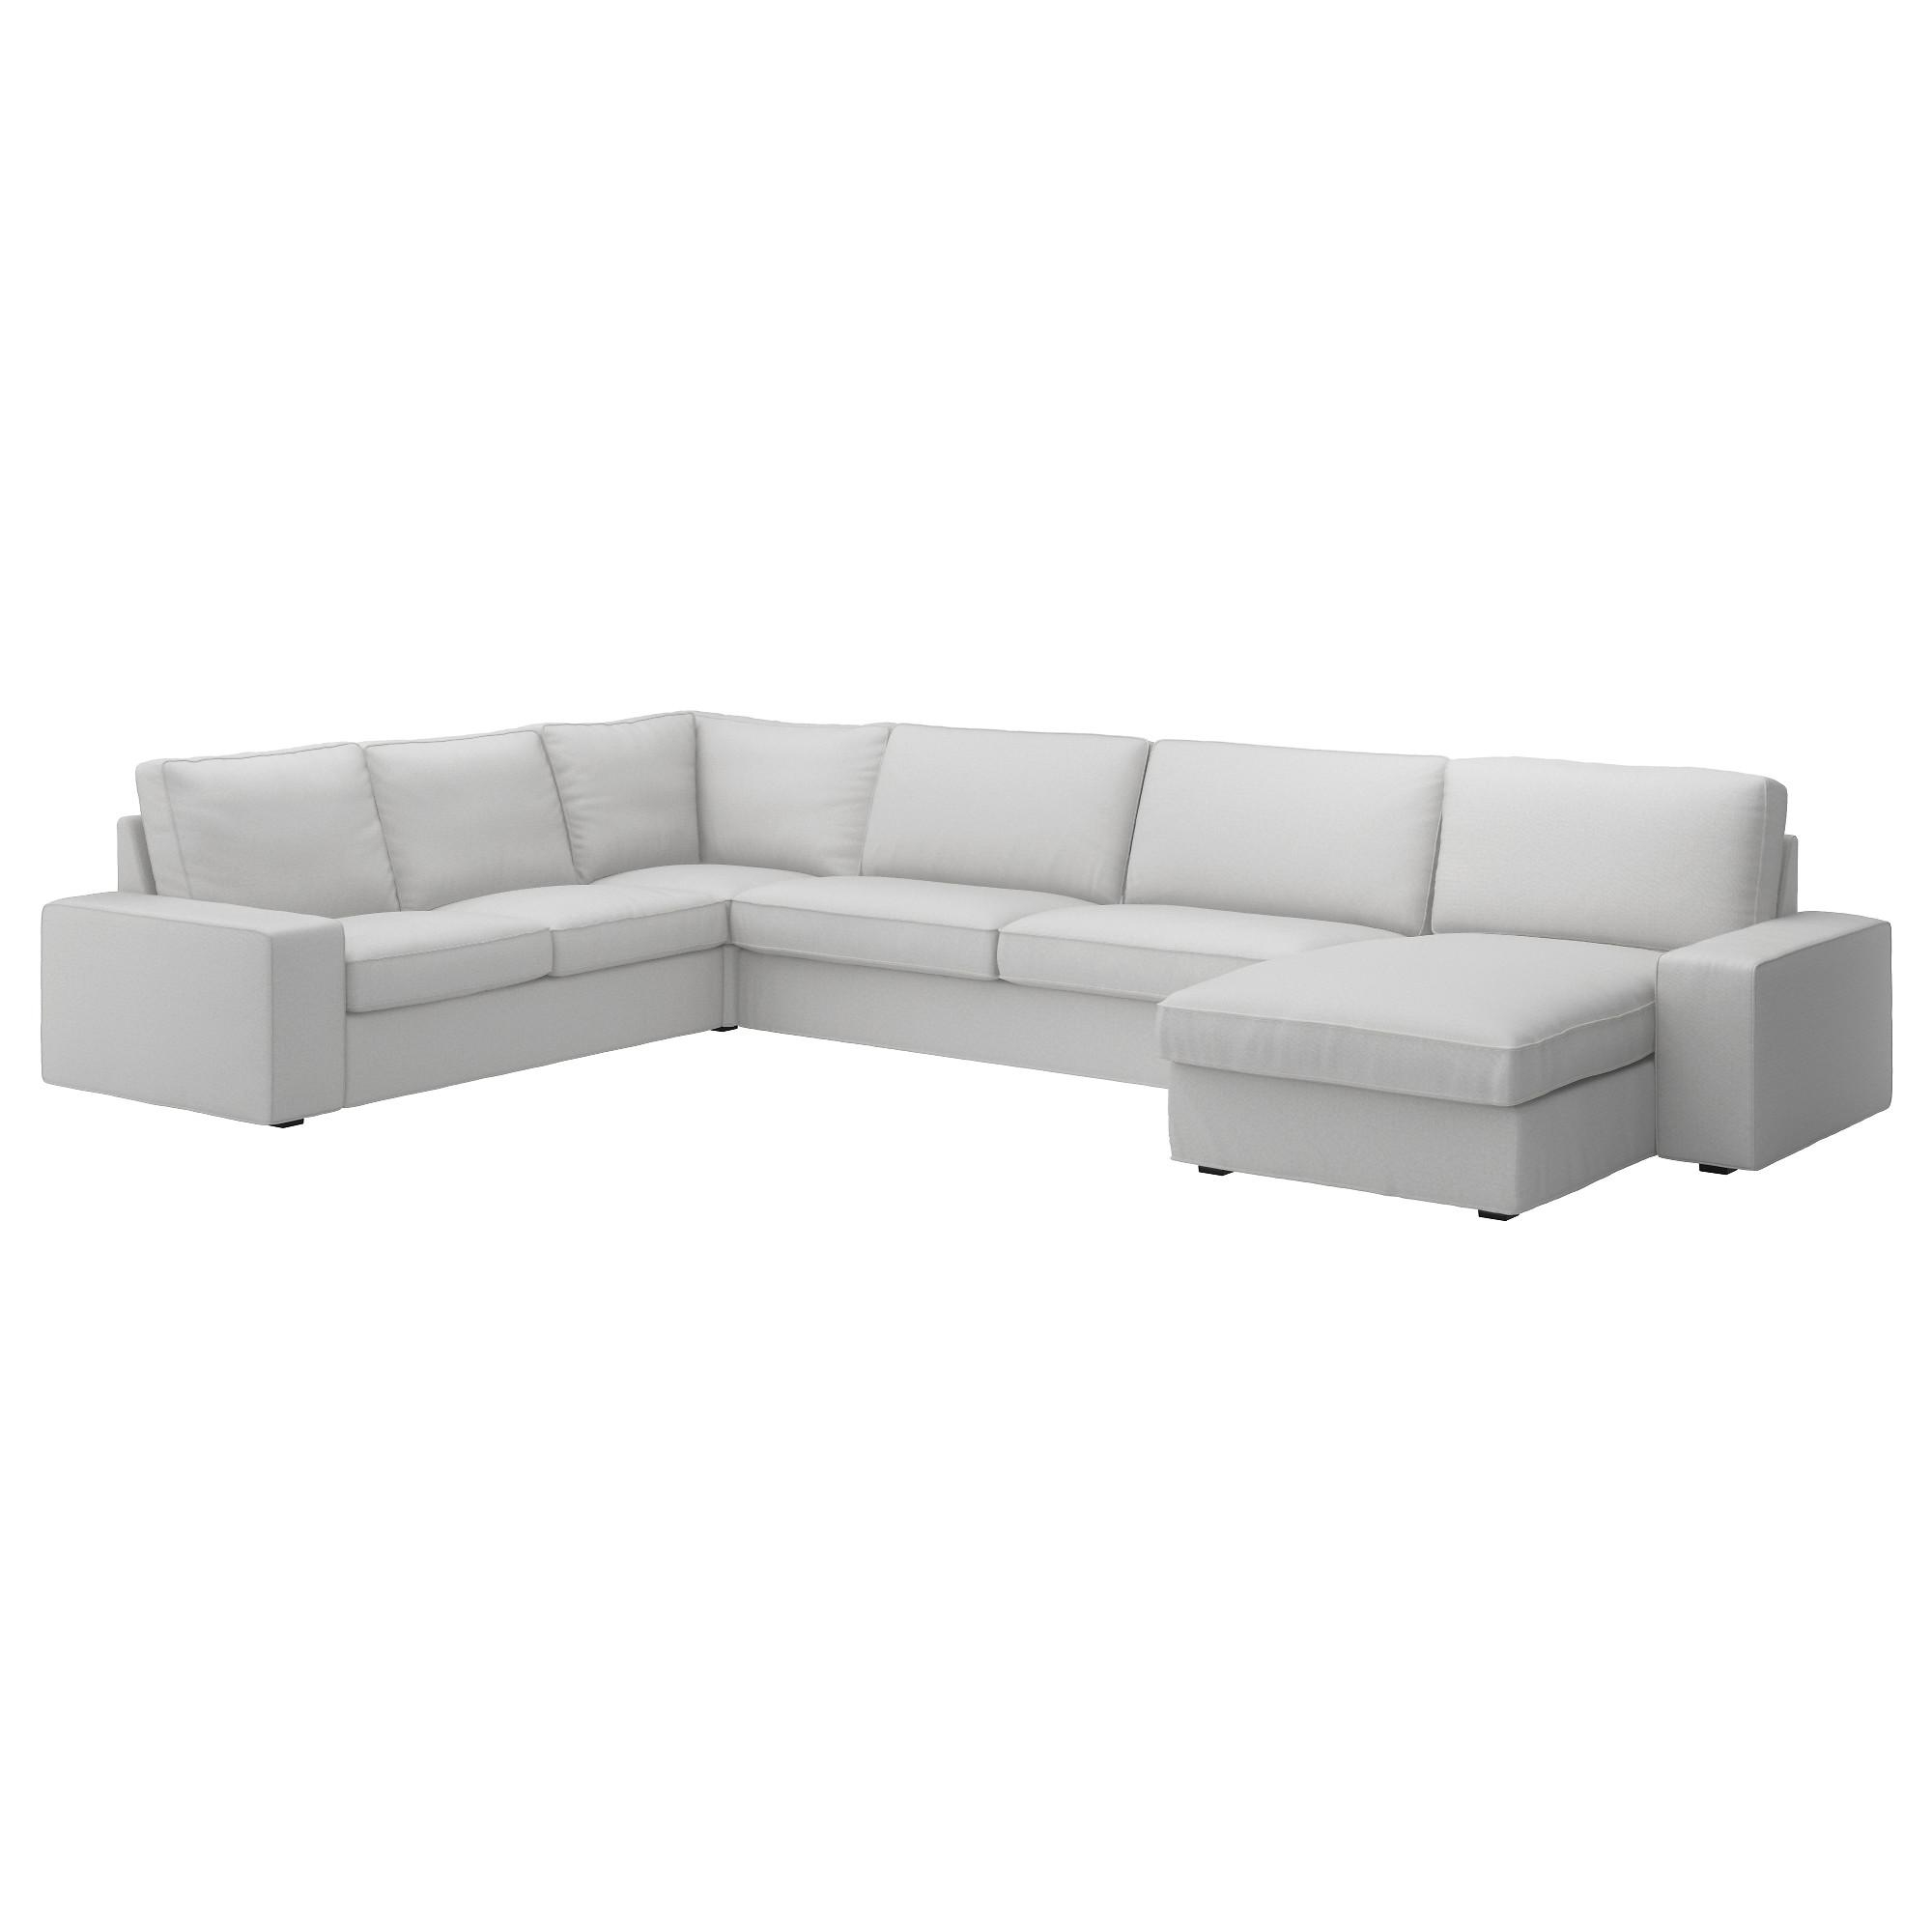 Furniture: Walmart Sofa Sleeper | Simmons Sofa | Sofas Under 300 Intended For Simmons Chaise Sofa (View 15 of 20)